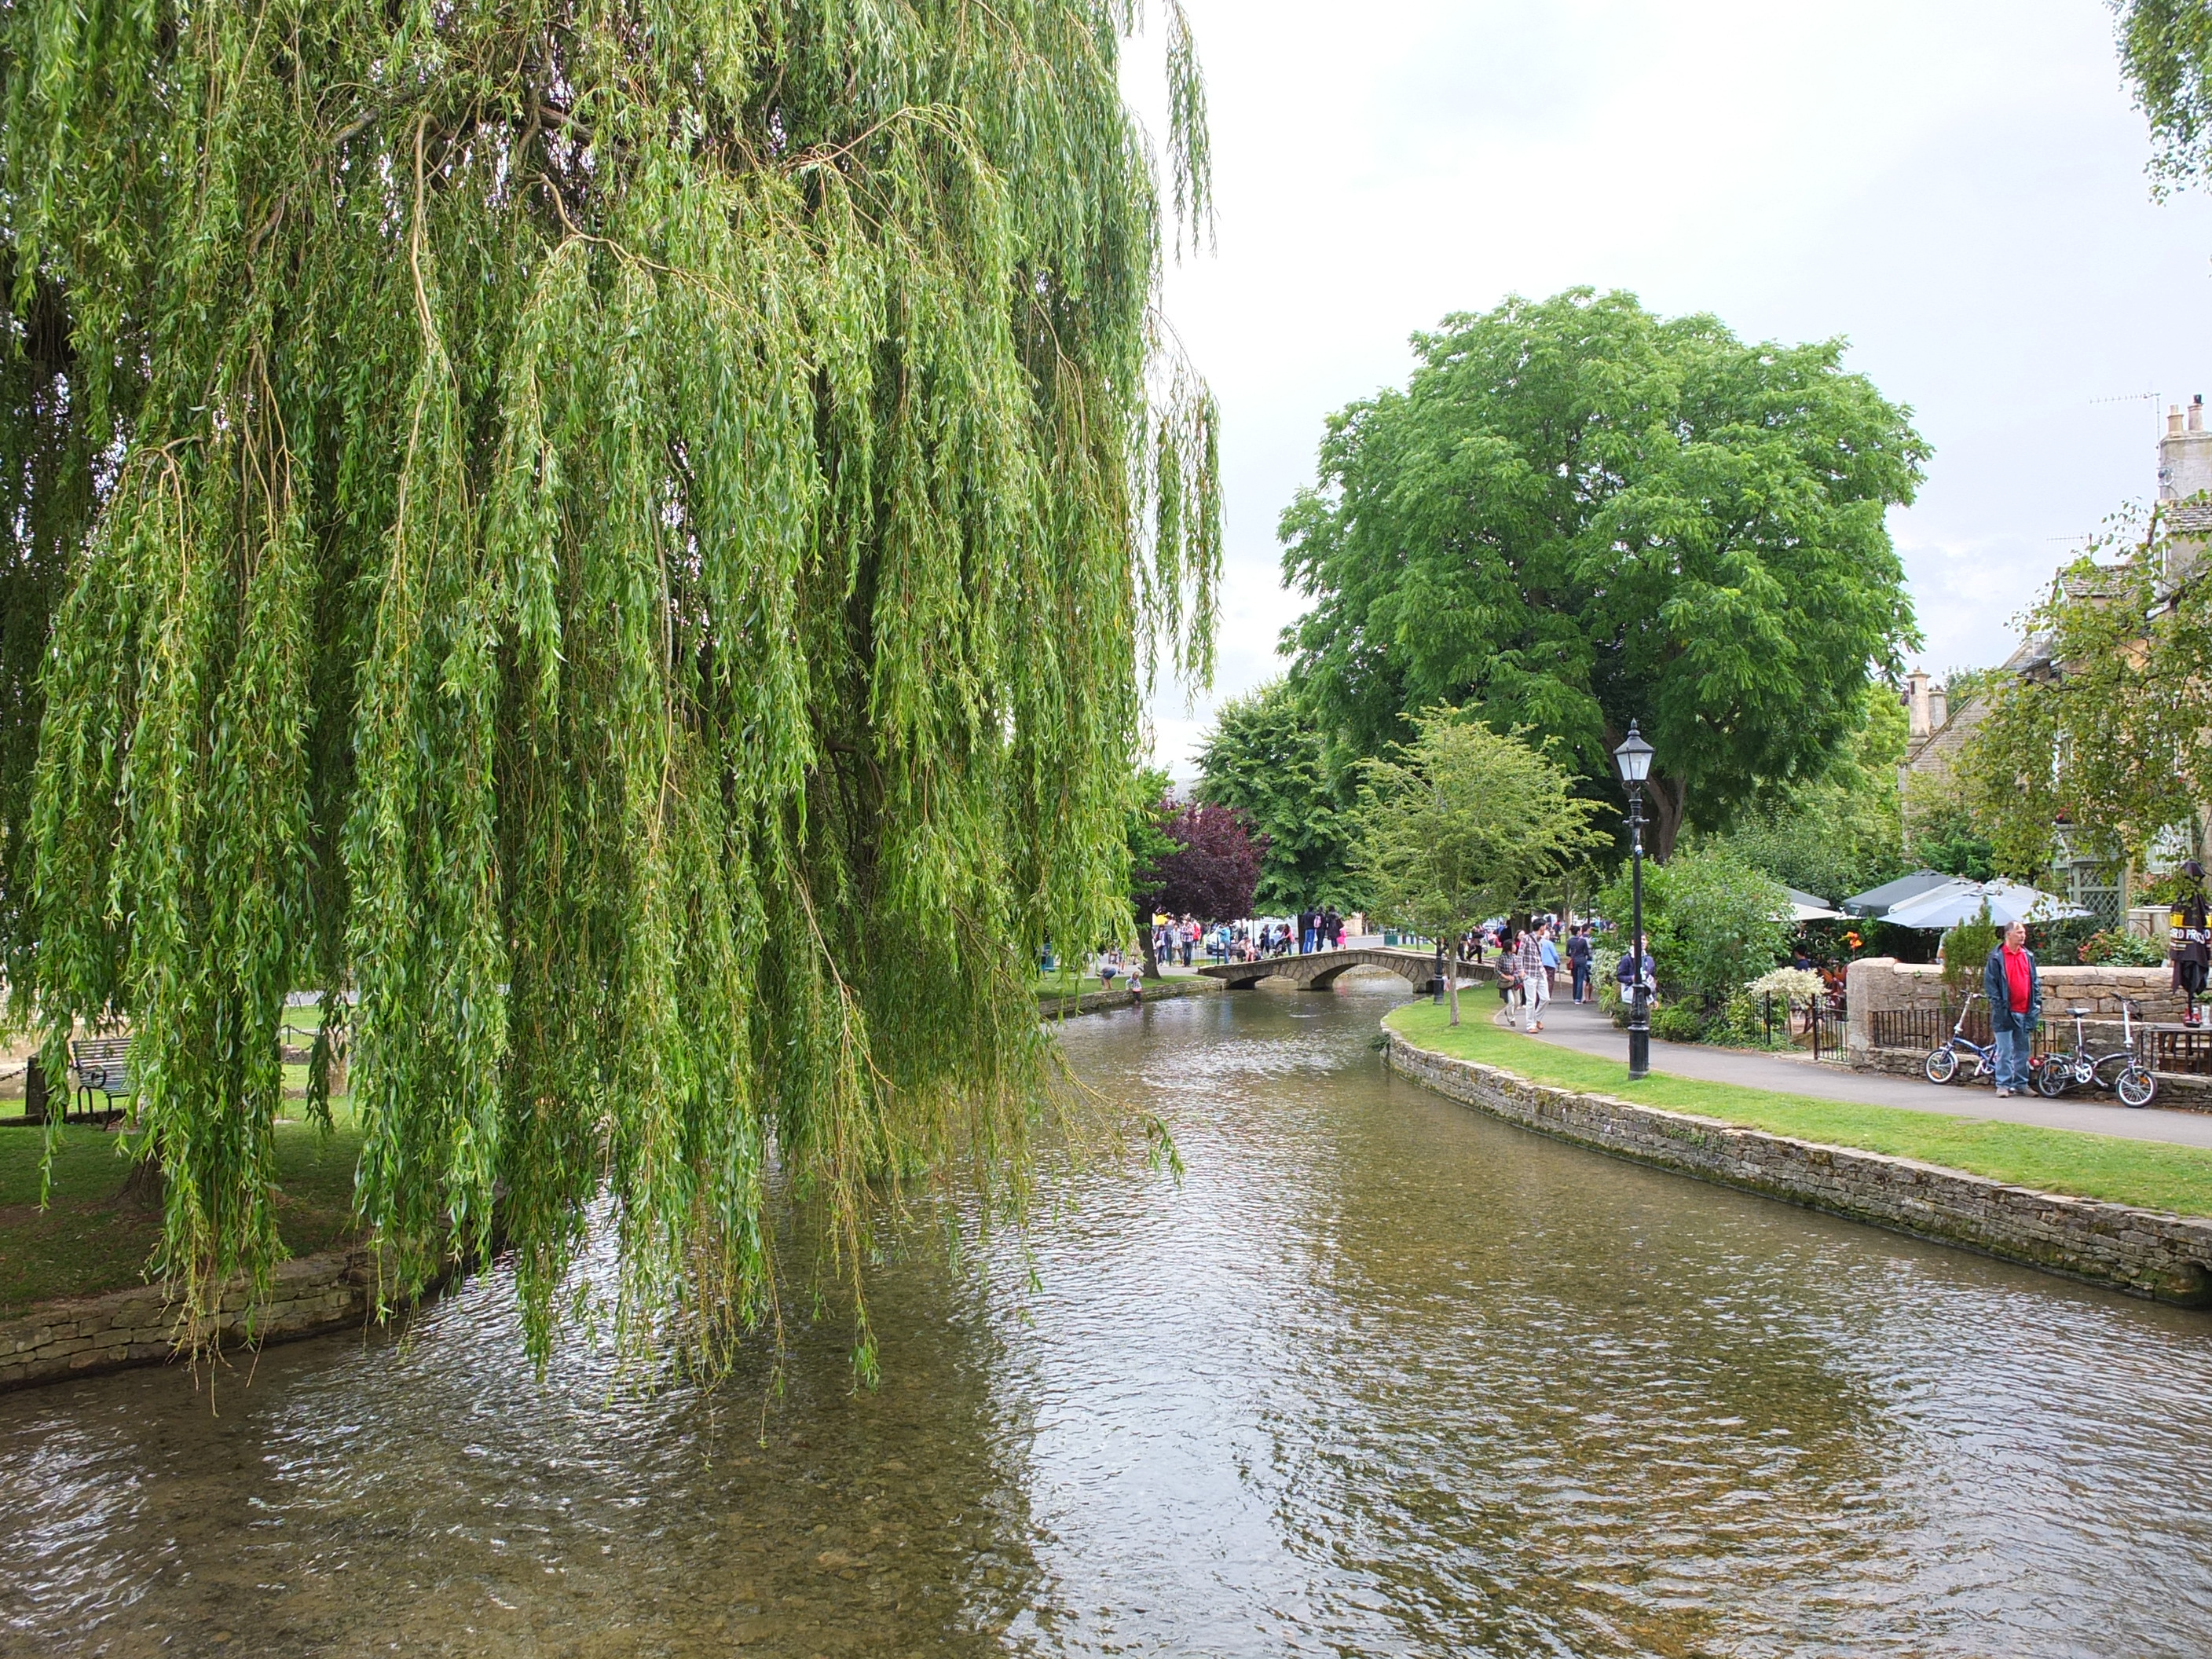 Mary S Tea Room Bourton On The Water